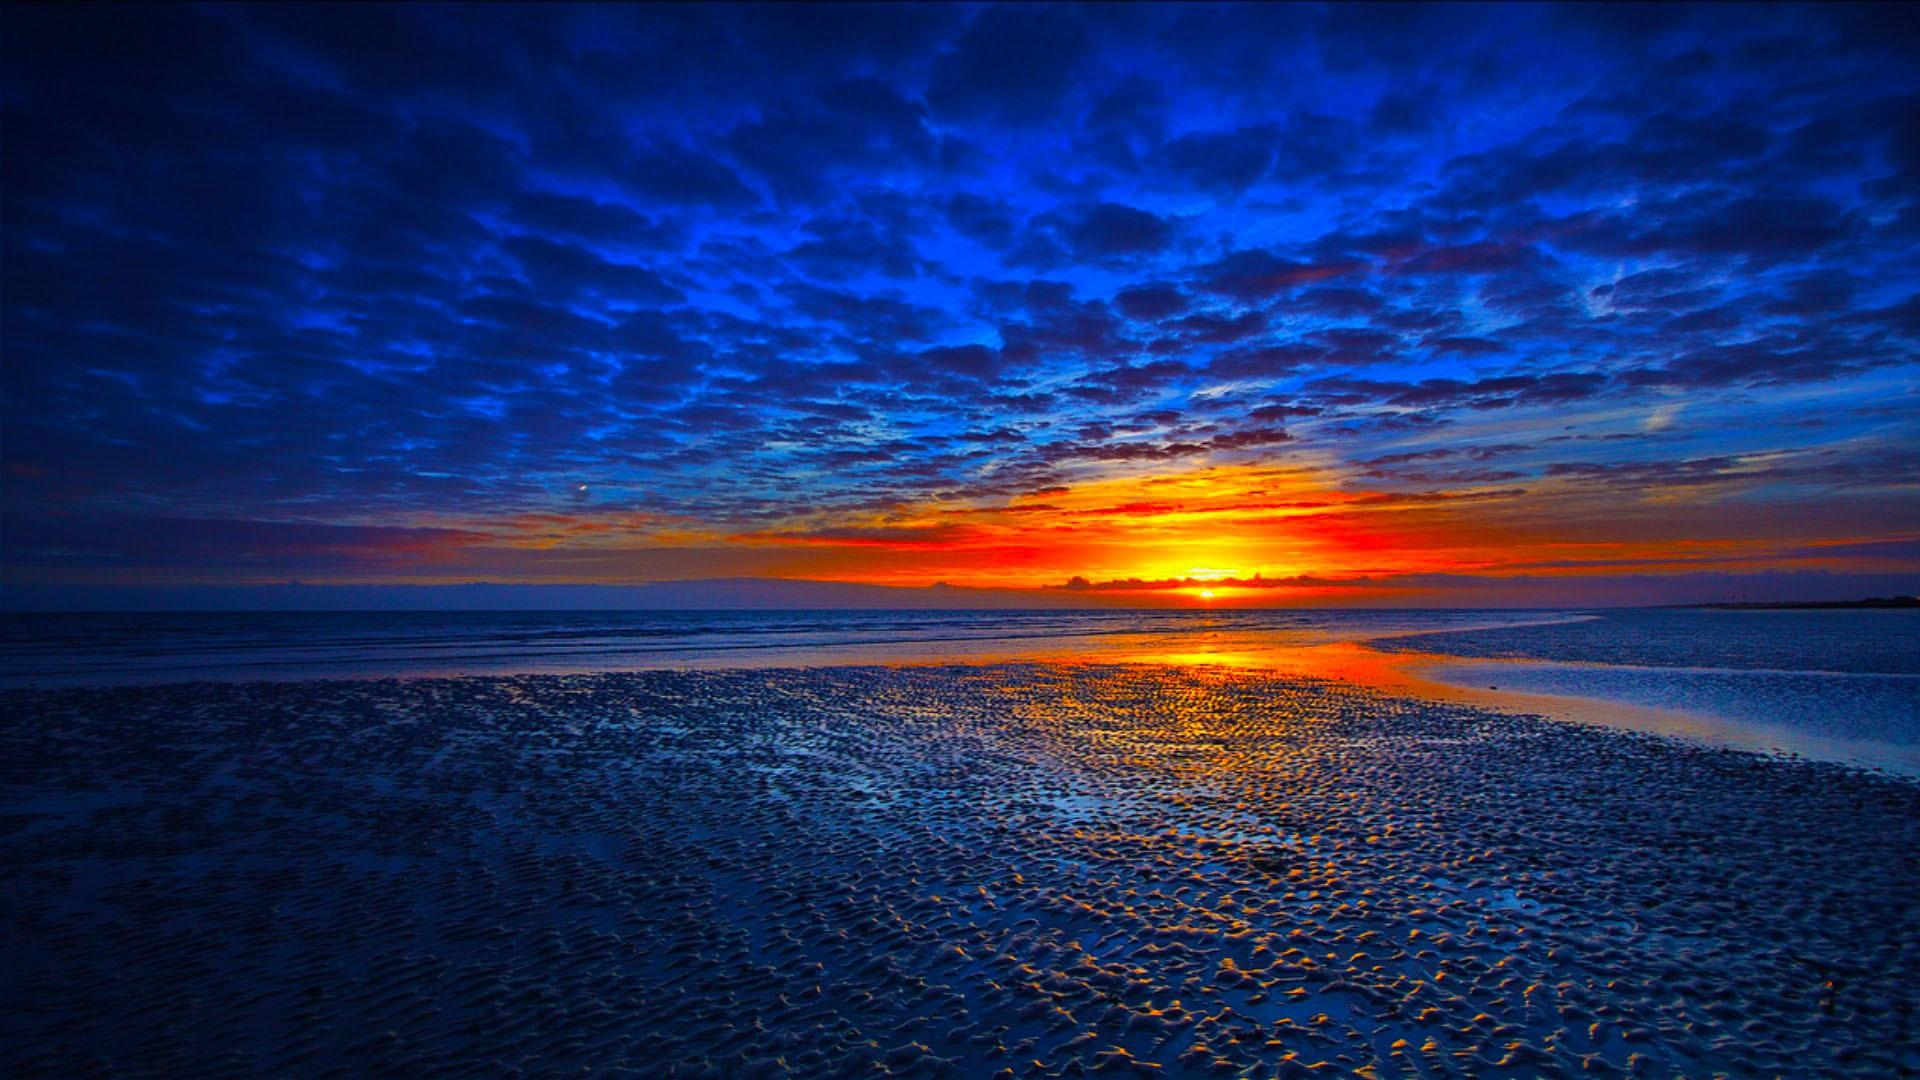 1080p blue sunset background wallpaper hd 1920x1080 1080p 1920x1080